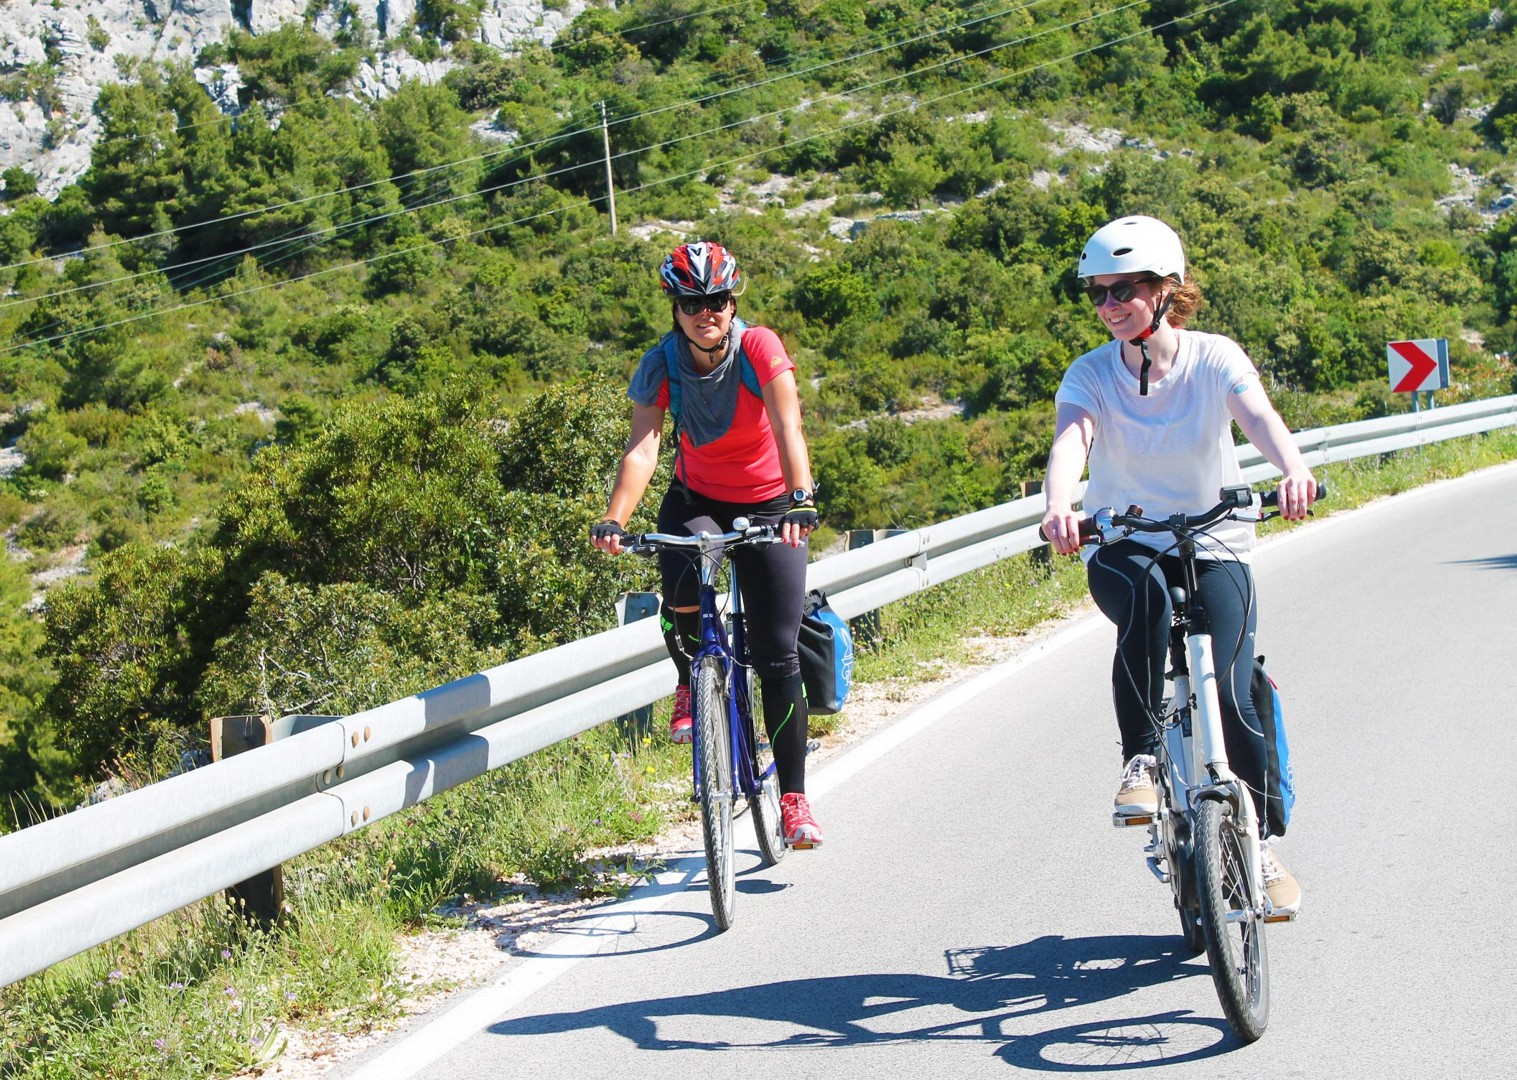 leisurely-bike-and-boat-holiday-croatia.jpg - Croatia - Dalmatian National Parks and Islands - Bike and Boat Holiday - Leisure Cycling